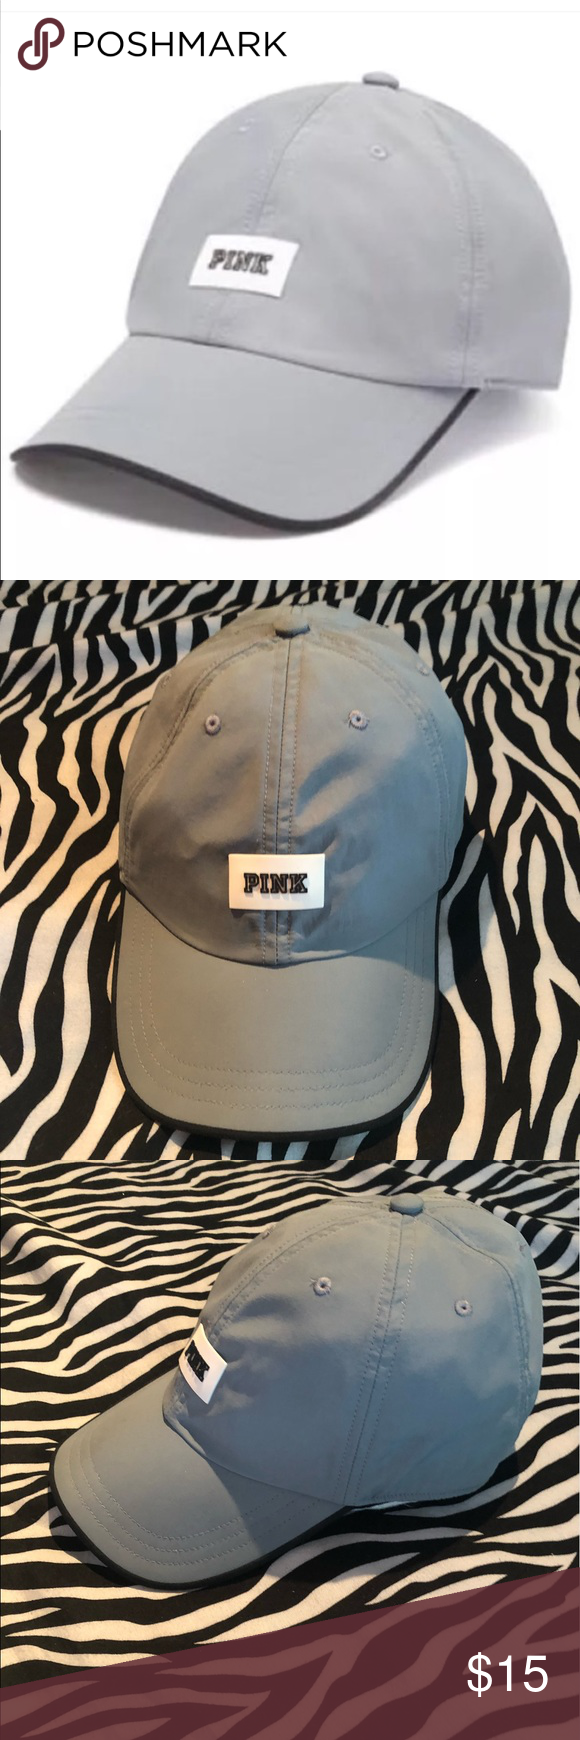 ff095f558dd Victoria s Secret pink dad hat cap 🧢 VS PINK GREY sports clip cap.  Breathable and water resistant perfect for working out or outdoor  activities.